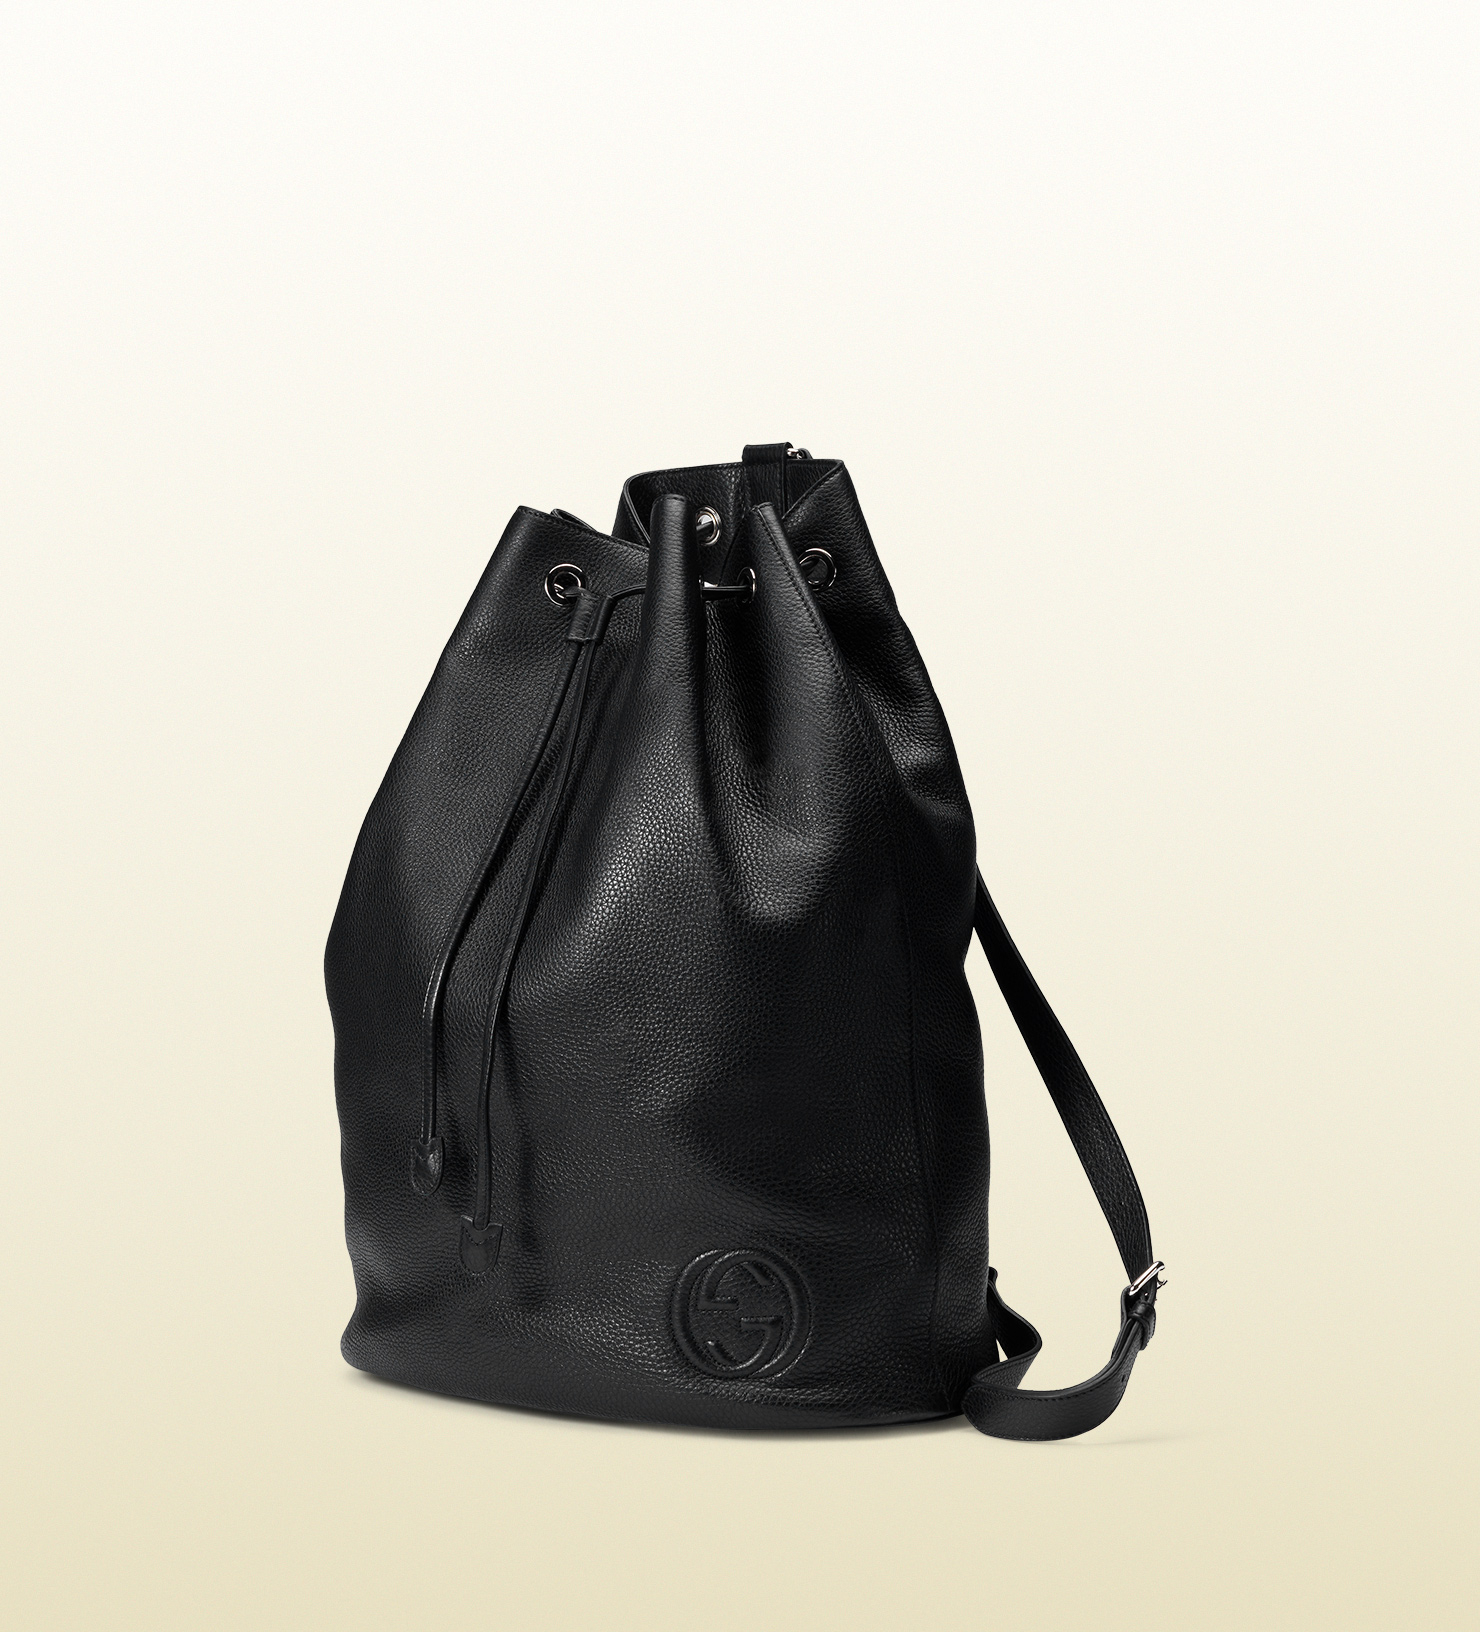 96401ccec24 Lyst - Gucci Soho Leather Drawstring Backpack in Black for Men